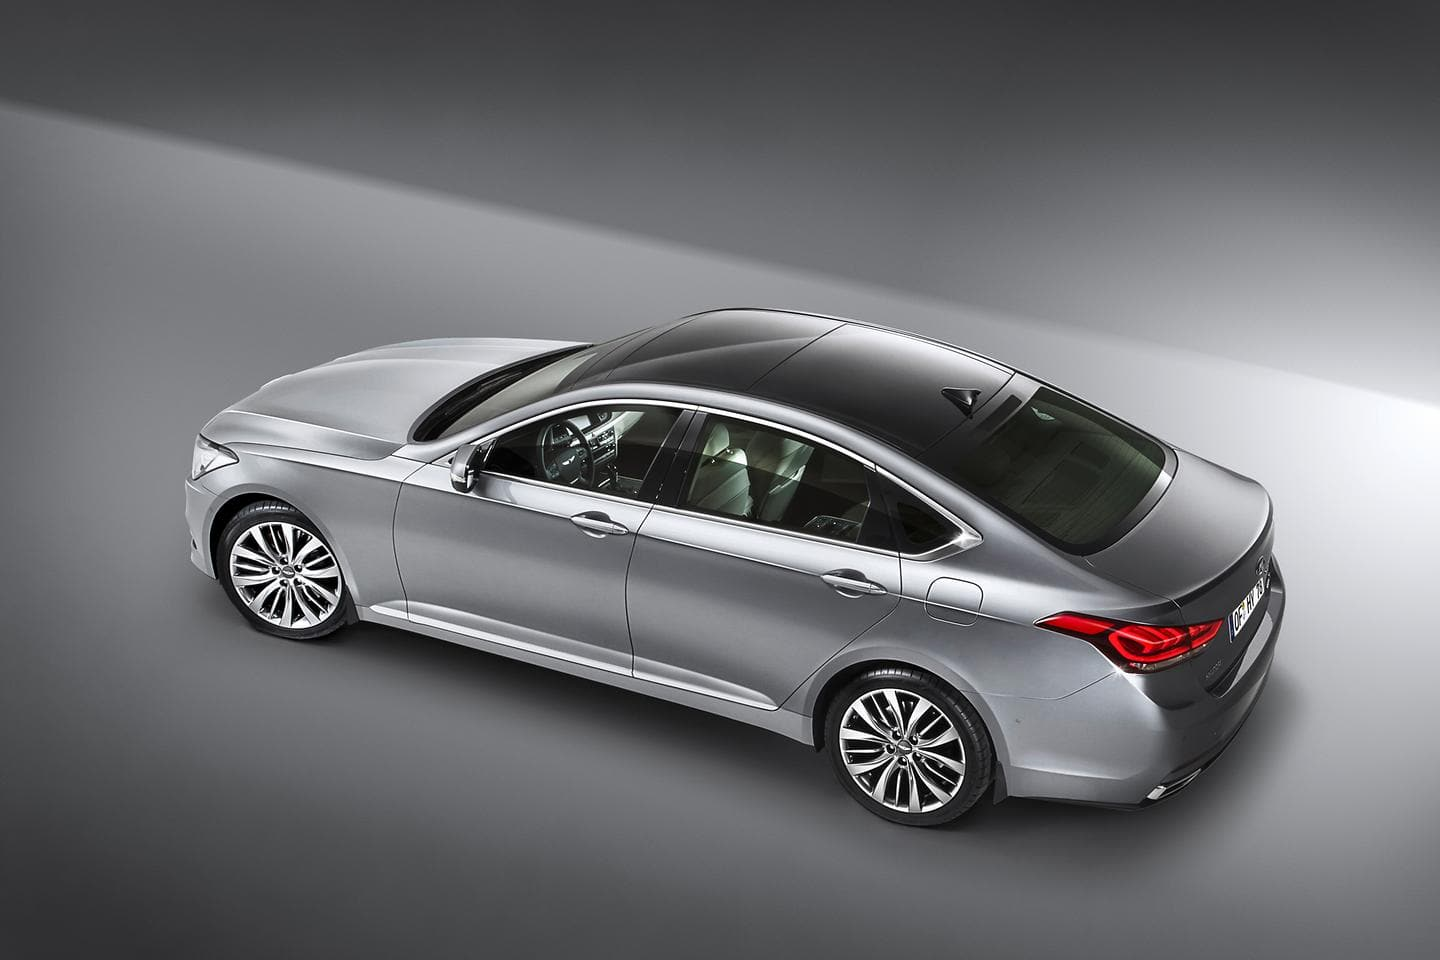 All-New Genesis debuting at 2014 Geneva Motor Show photo 2